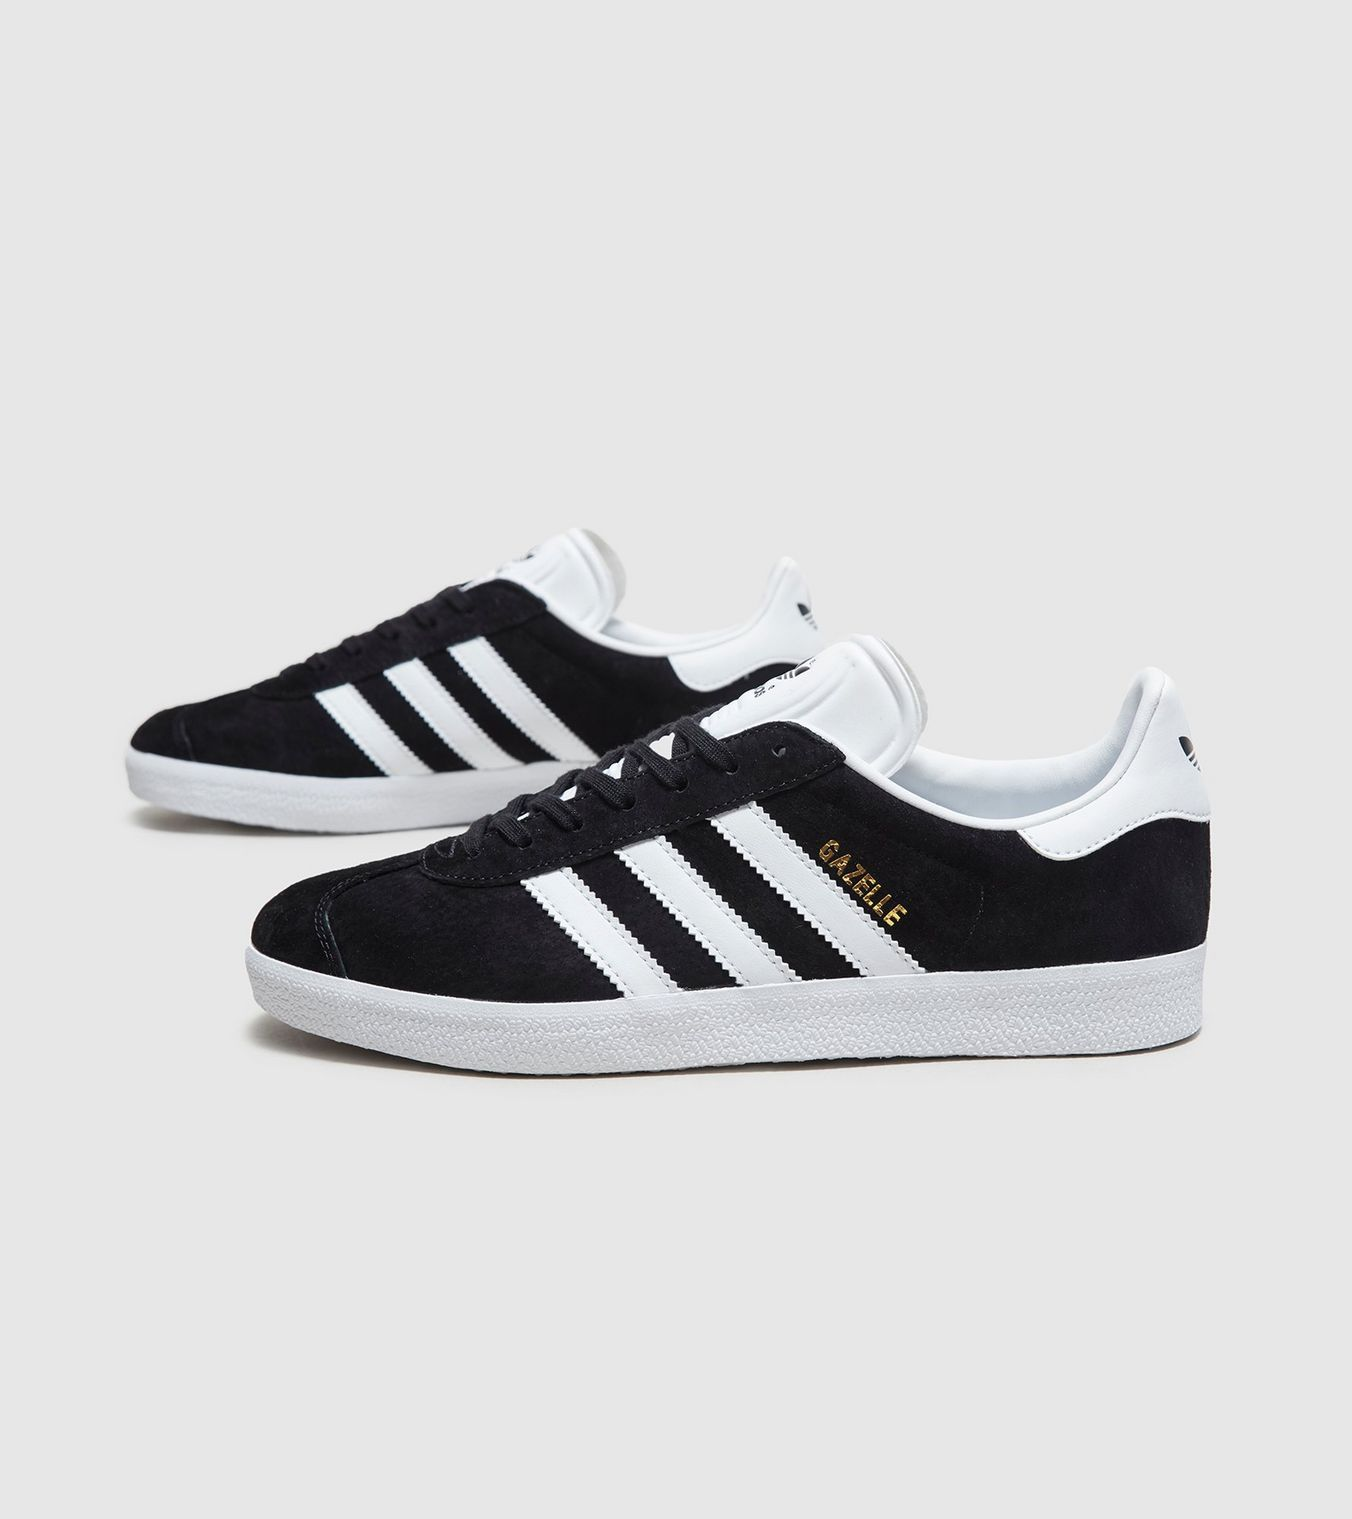 WHITE Adidas Gazelle Retro Classic Fashion Casual in BLACK